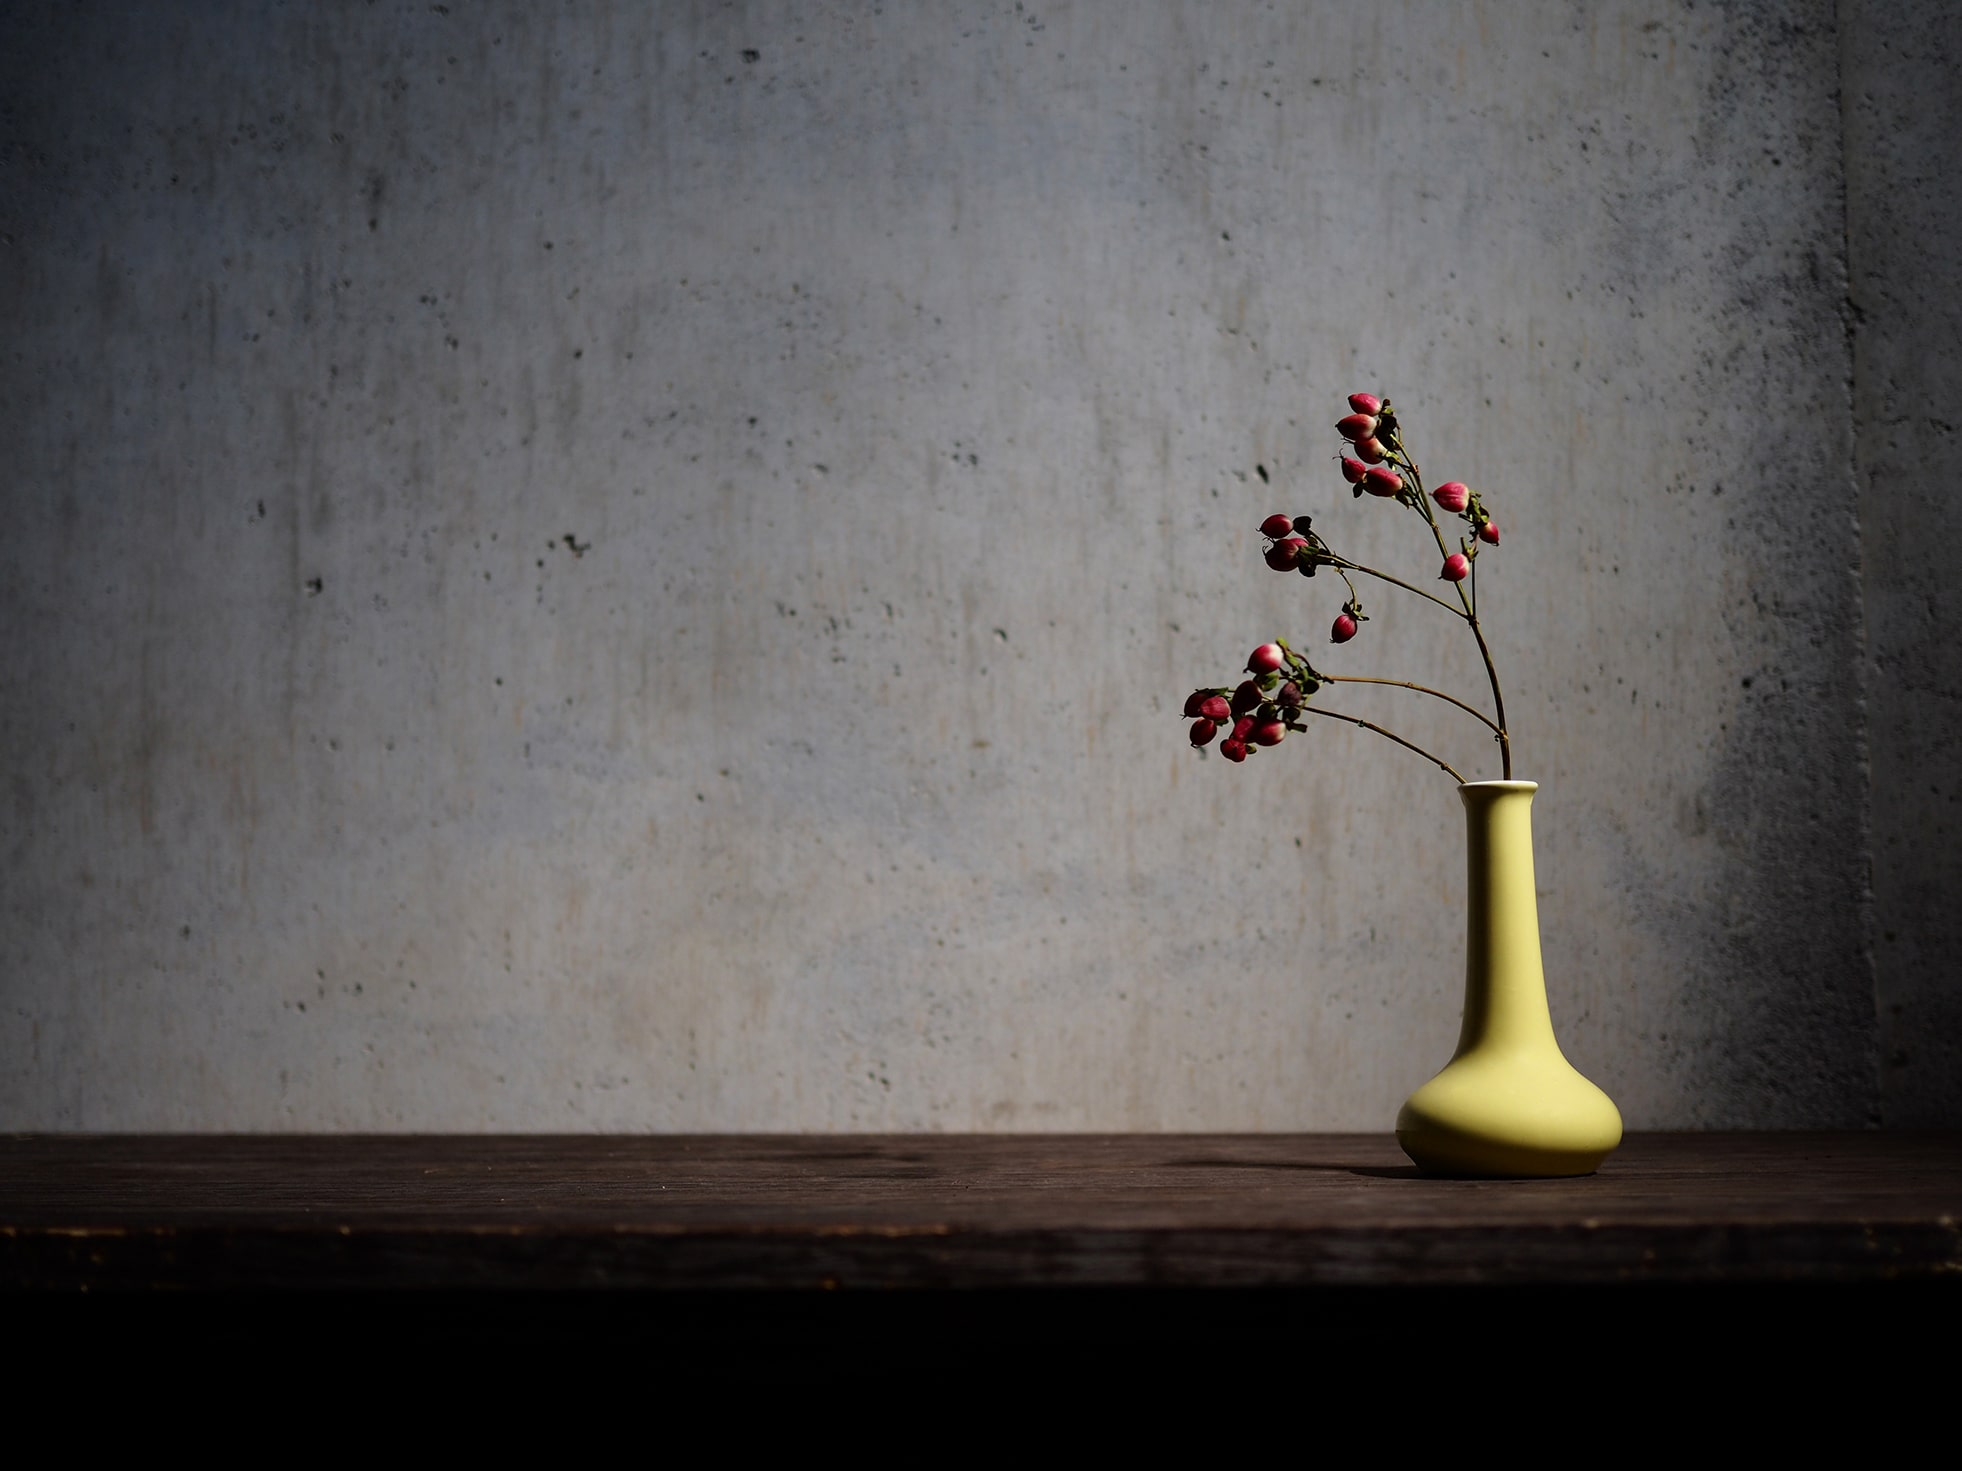 Why is it difficult to understand what wabi-sabi means?